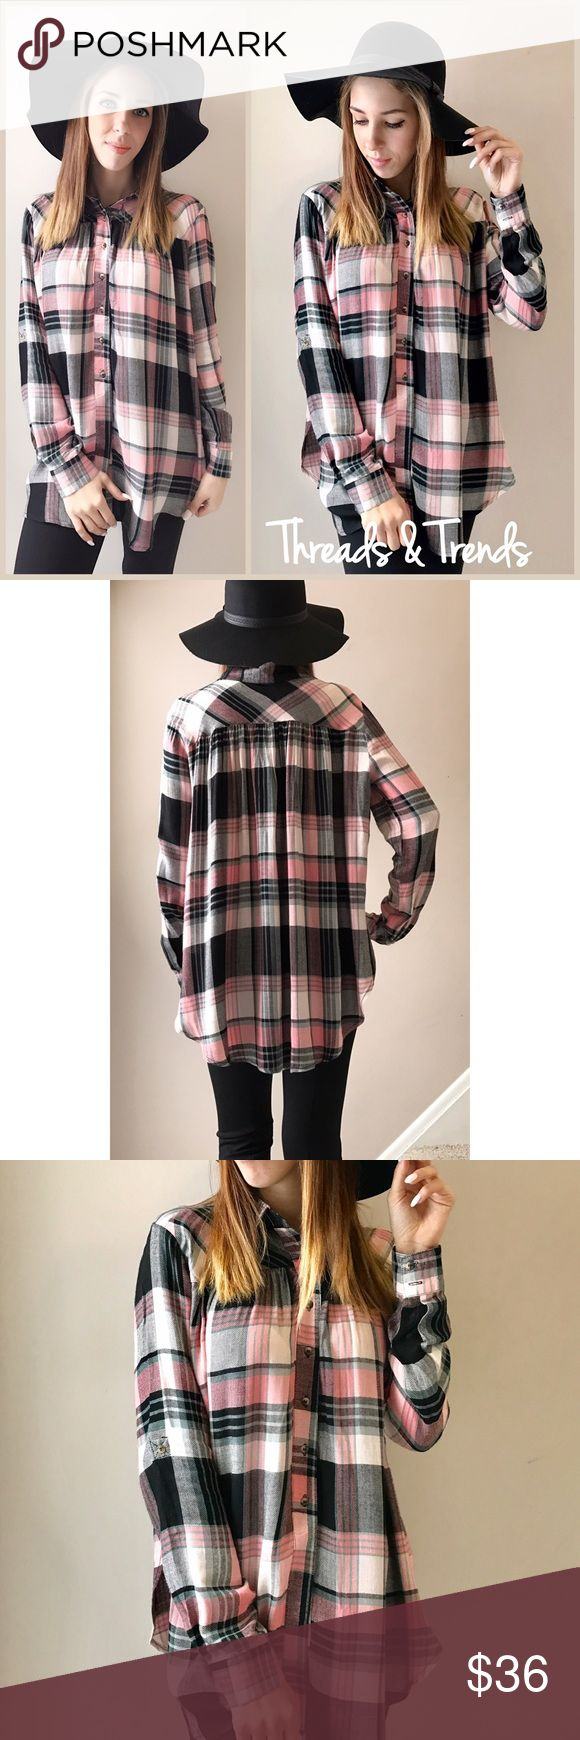 Pink Plaid Flannel Blouse Super soft oversized babydoll style pink & black Plaid flannel button down blouse. So soft and flows. Great quality. Size S/M, M/L, L/XL Threads & Trends Tops Blouses